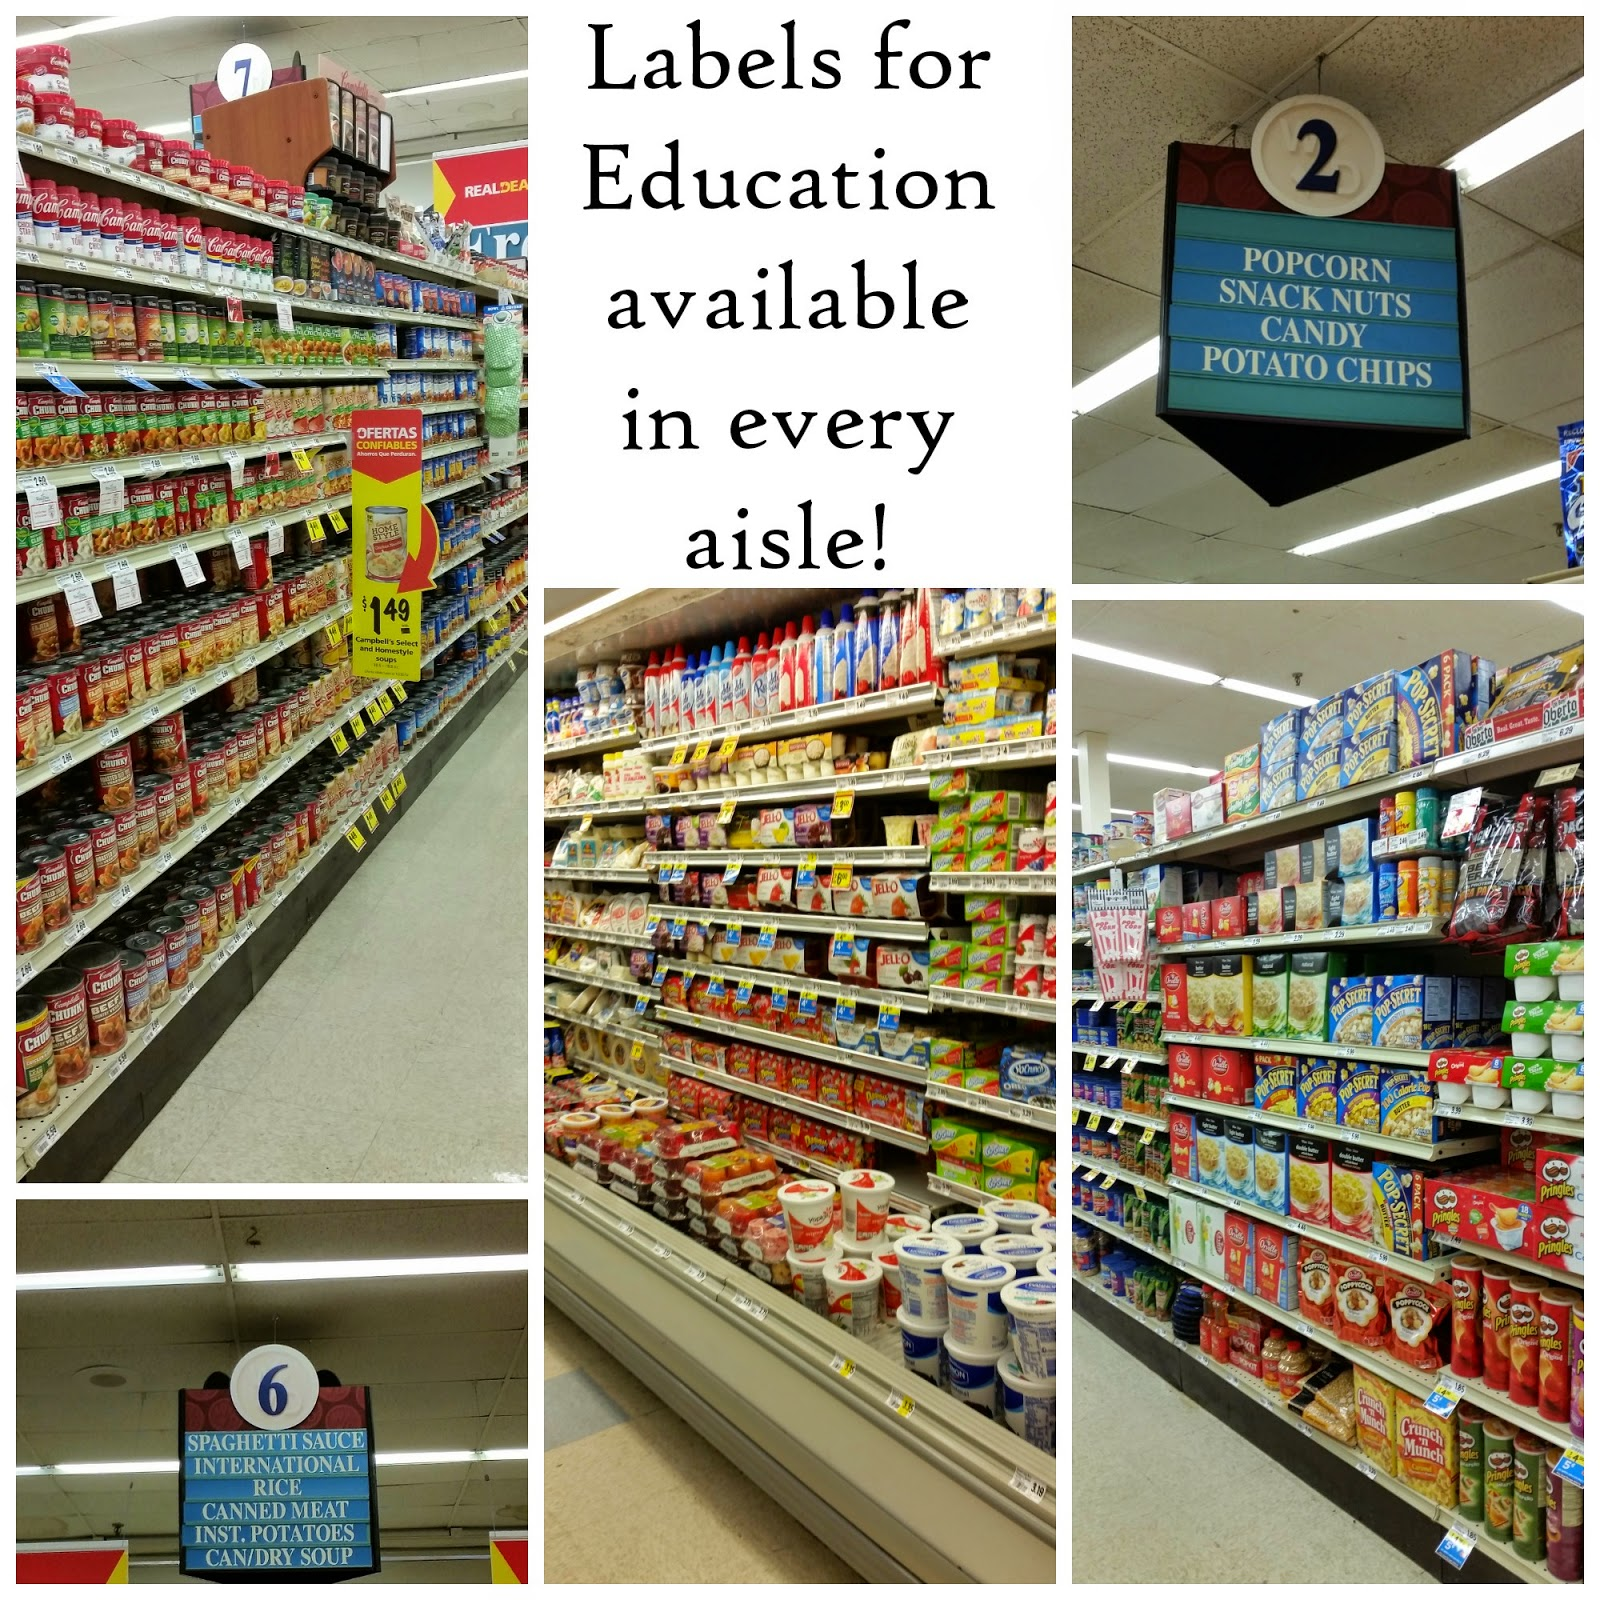 Labels for Education products available in every aisle at your local grocery store! #Labels4Edu #CollectiveBias